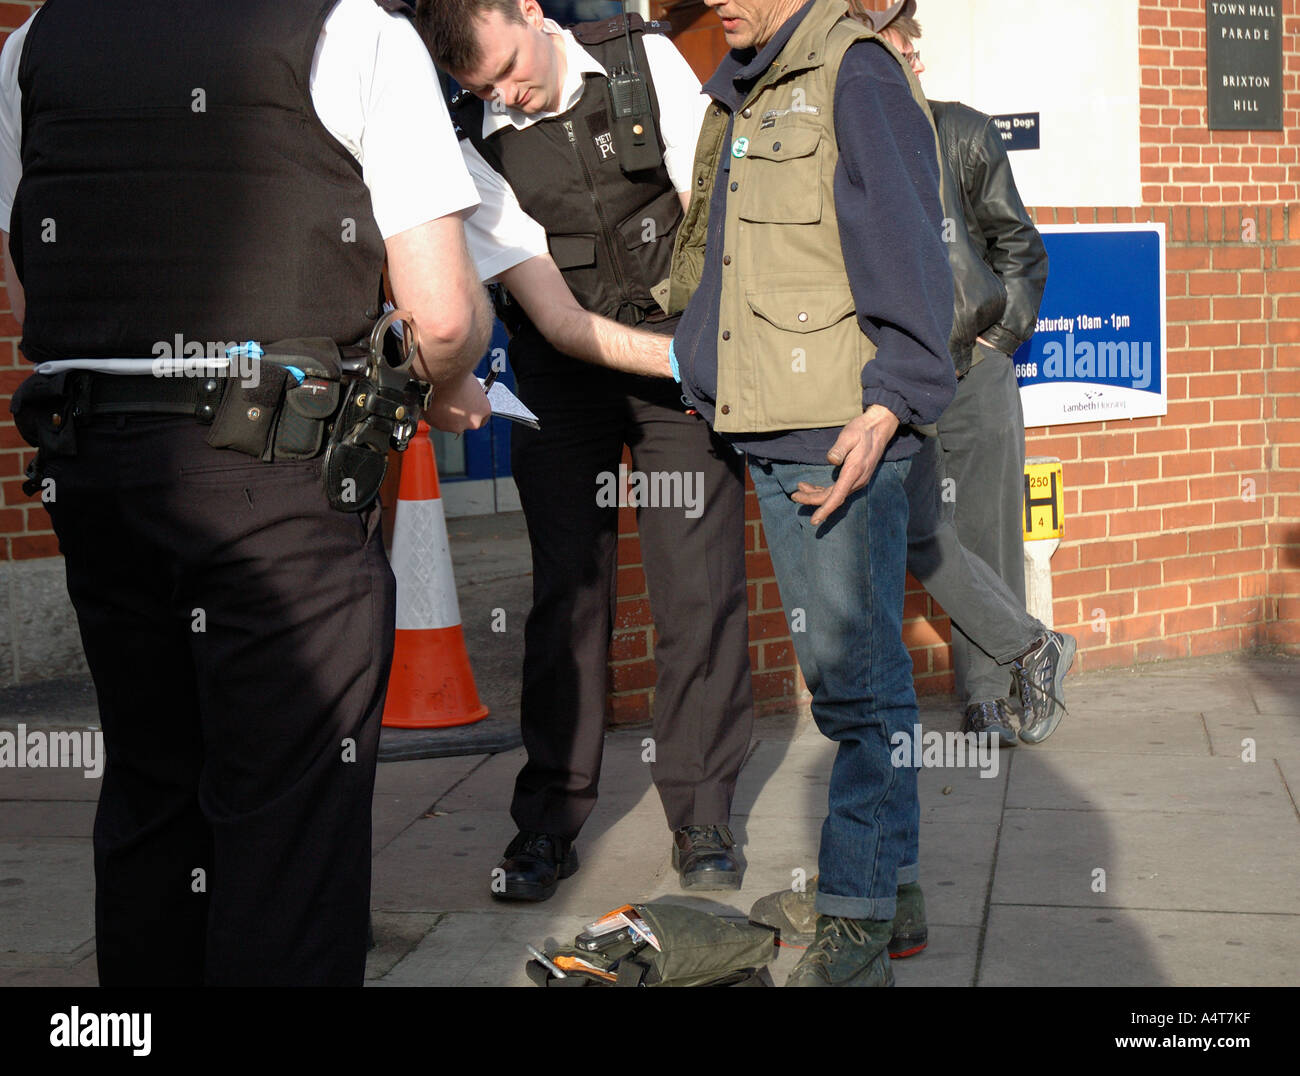 Police stop and searching youth in the streets of Brixton. - Stock Image